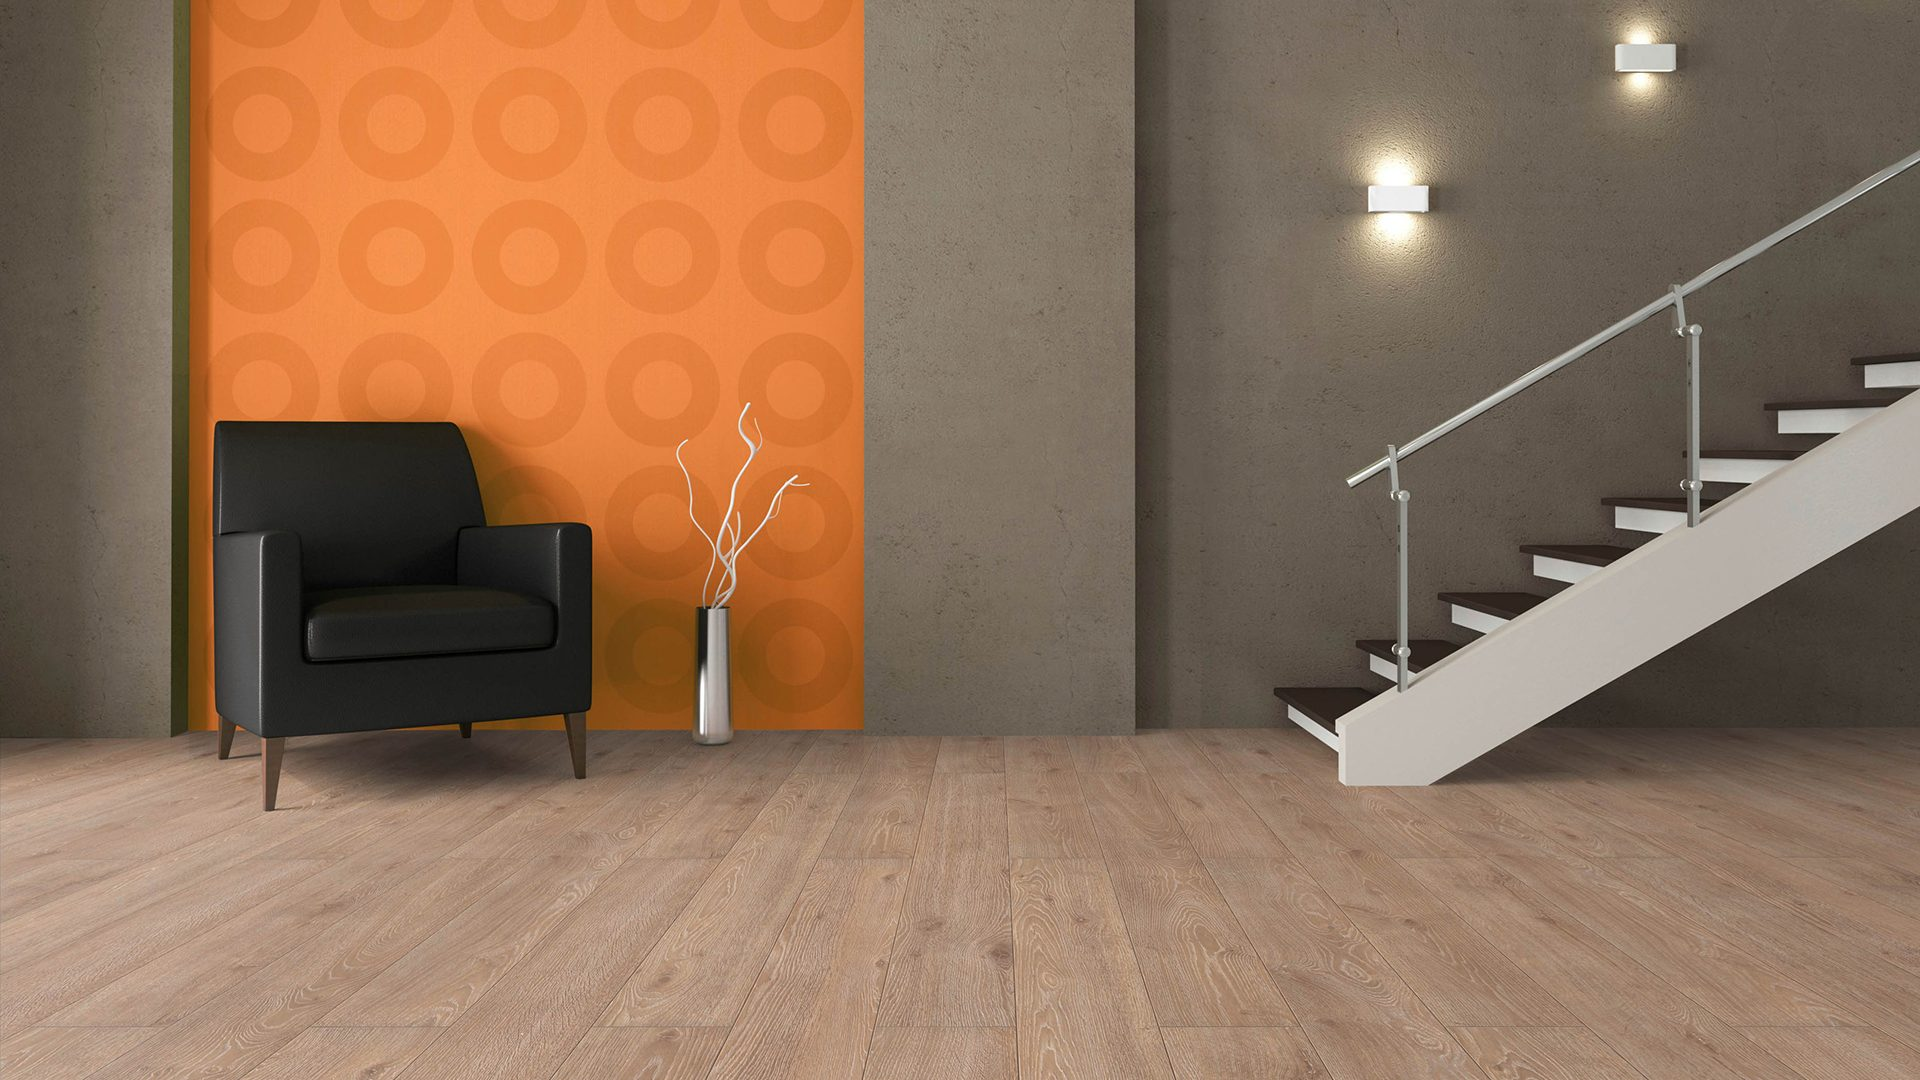 Home les planchers payless les planchers payless quebecs floor covering leader doublecrazyfo Image collections